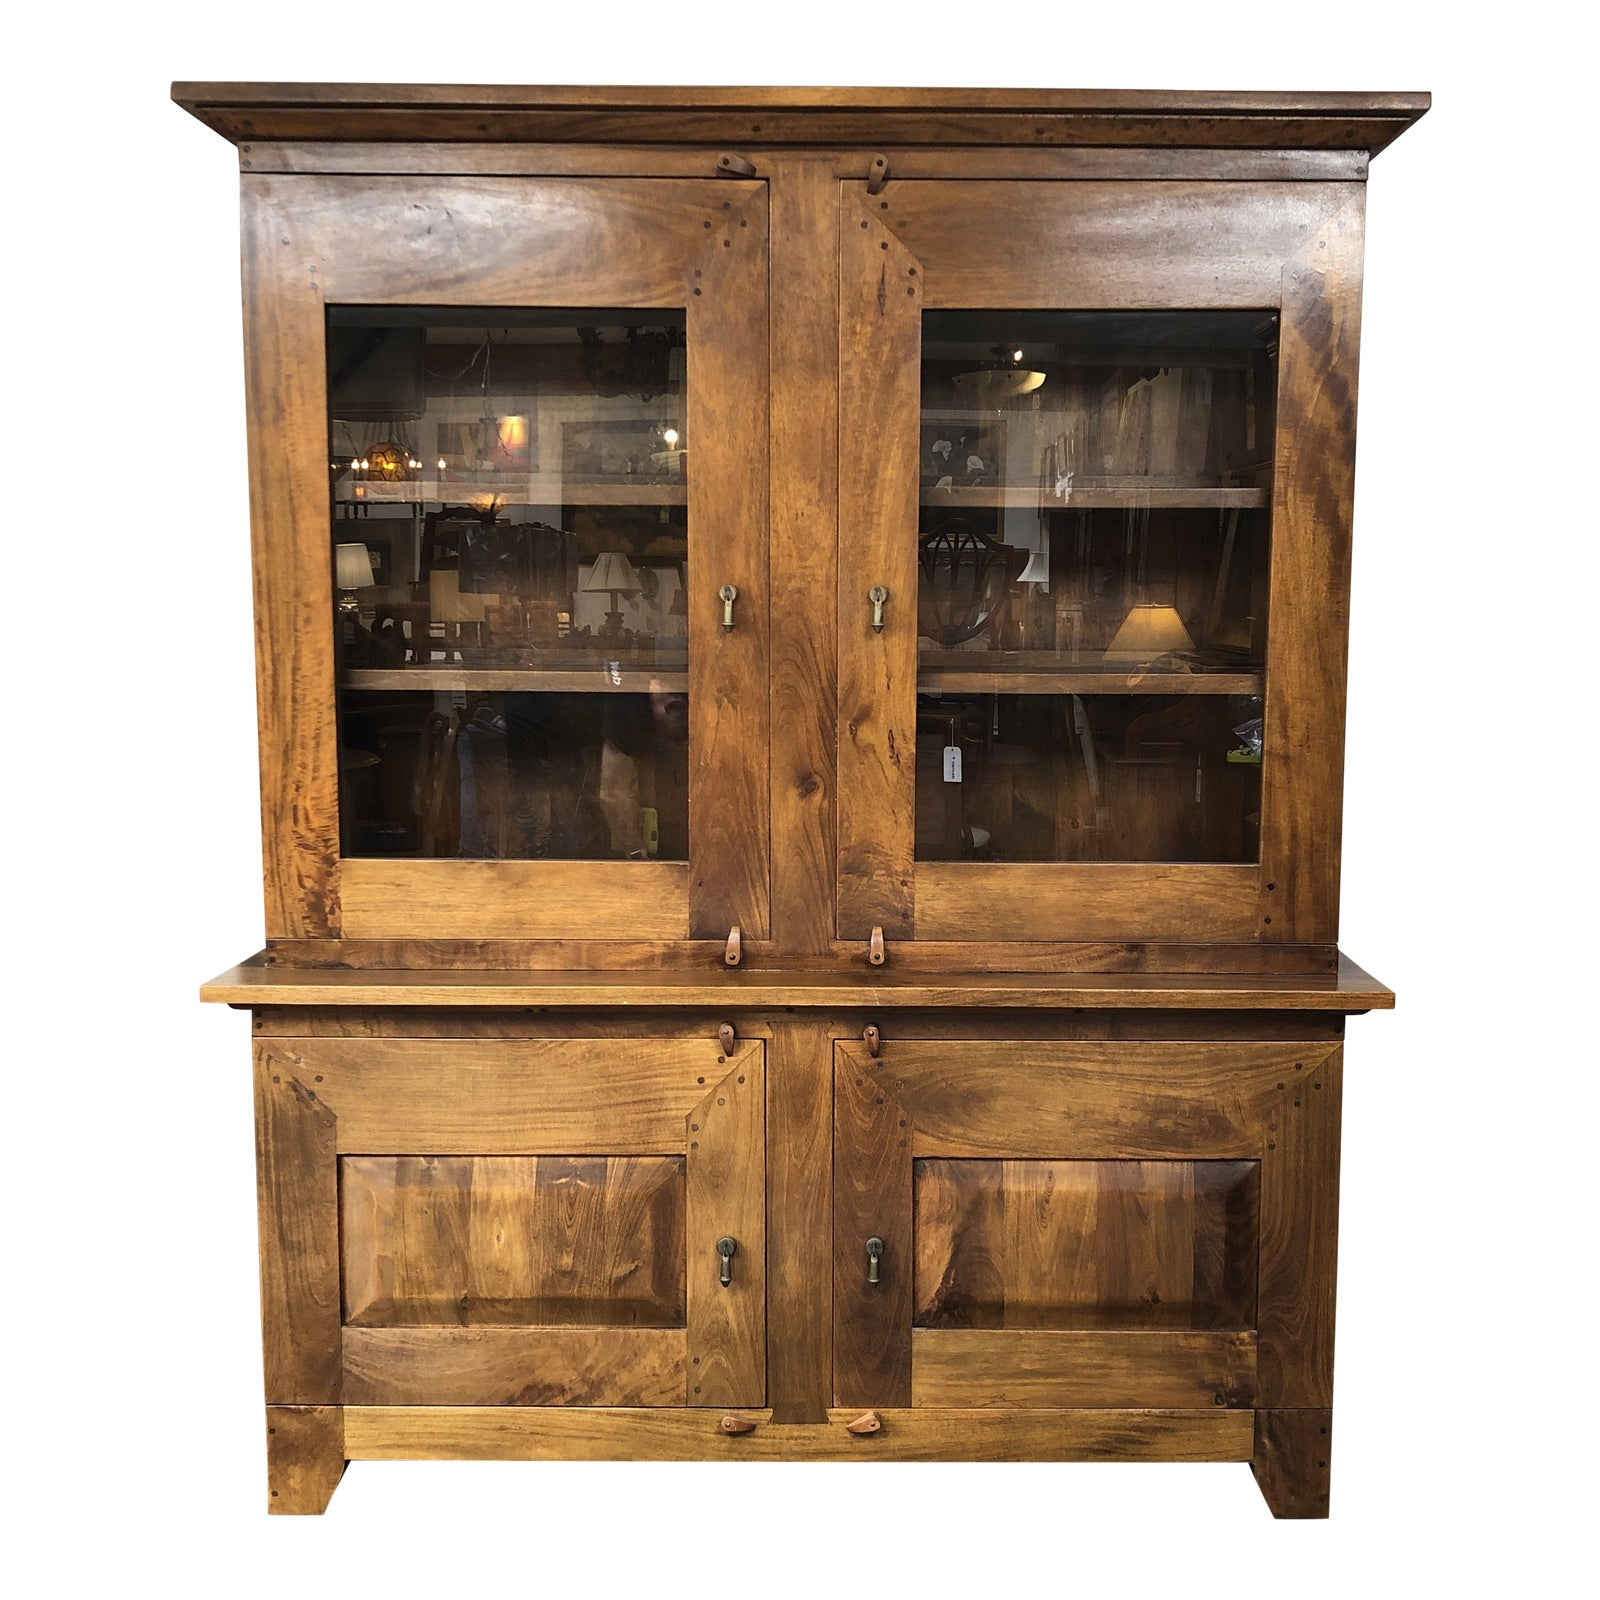 crate barrel basque sideboard hutch original price on crate and barrel id=39845